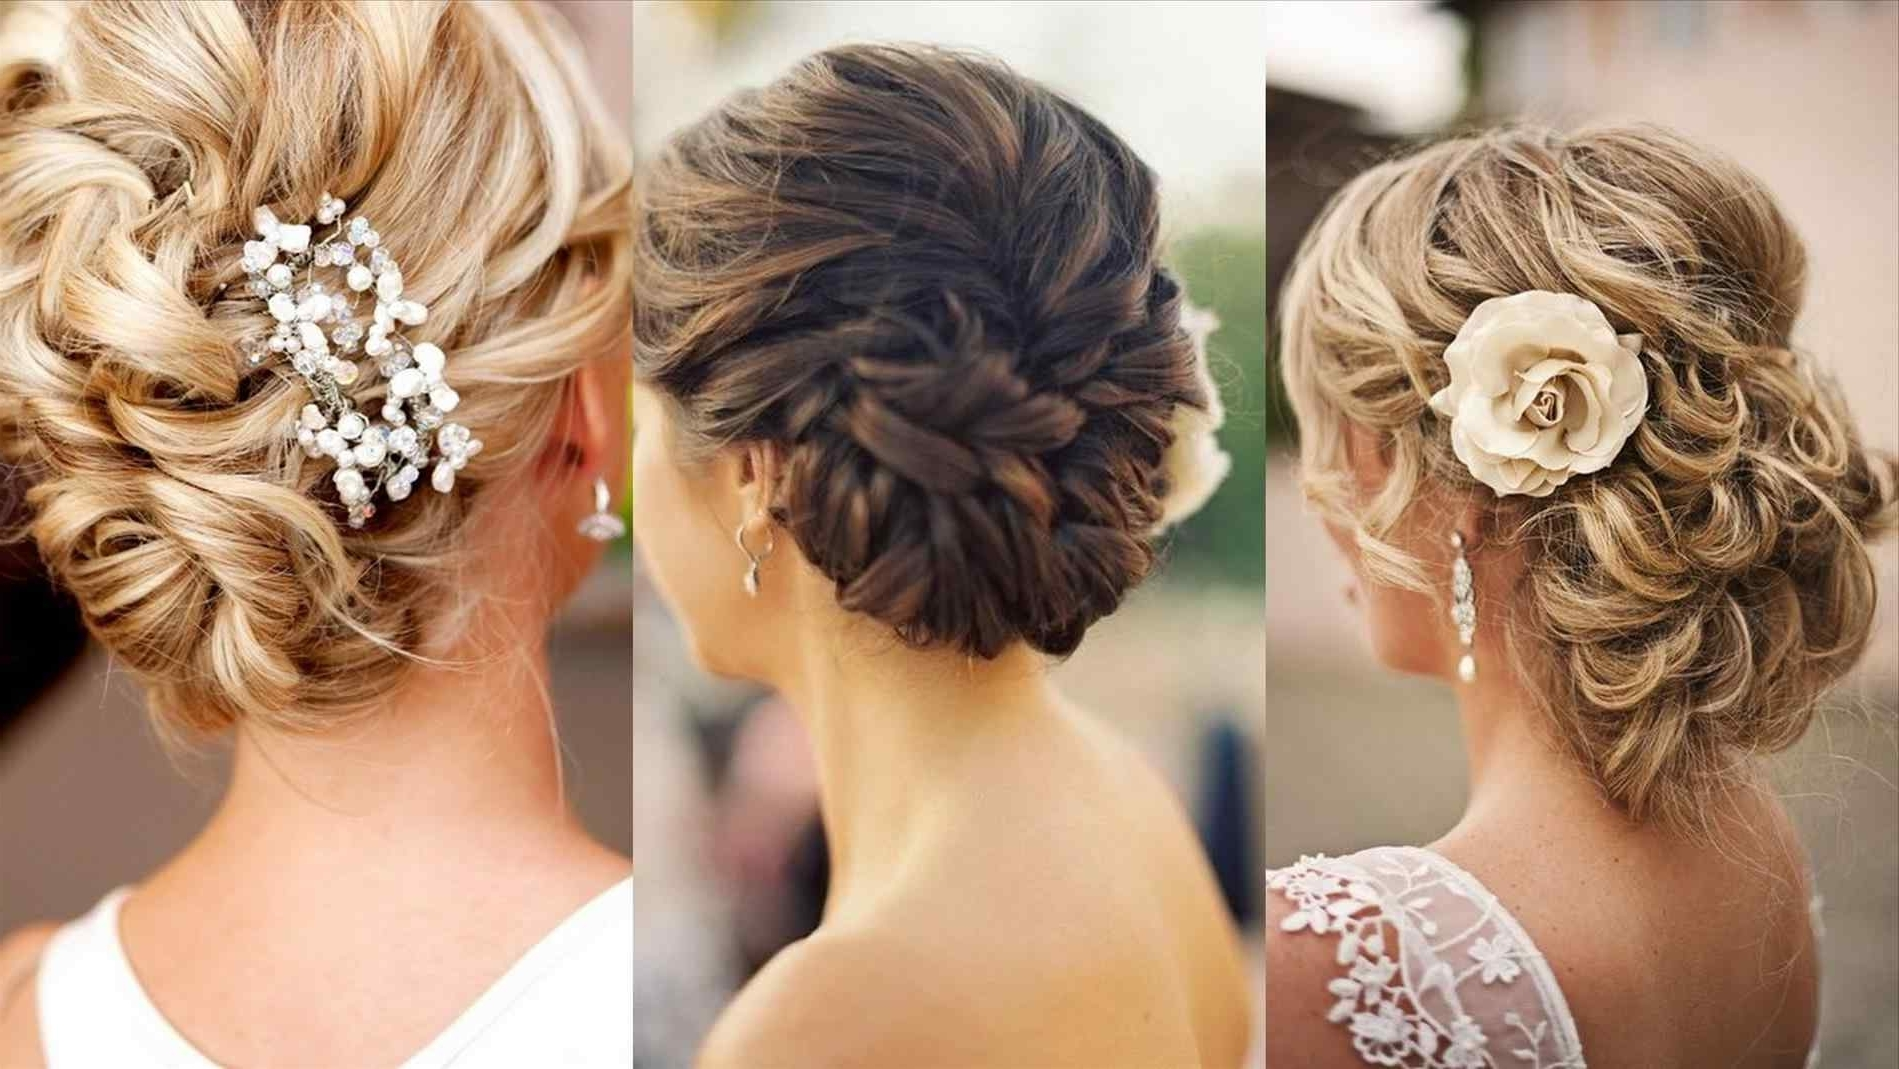 2019 Latest Wedding Updo Hairstyles For Shoulder Length Hair